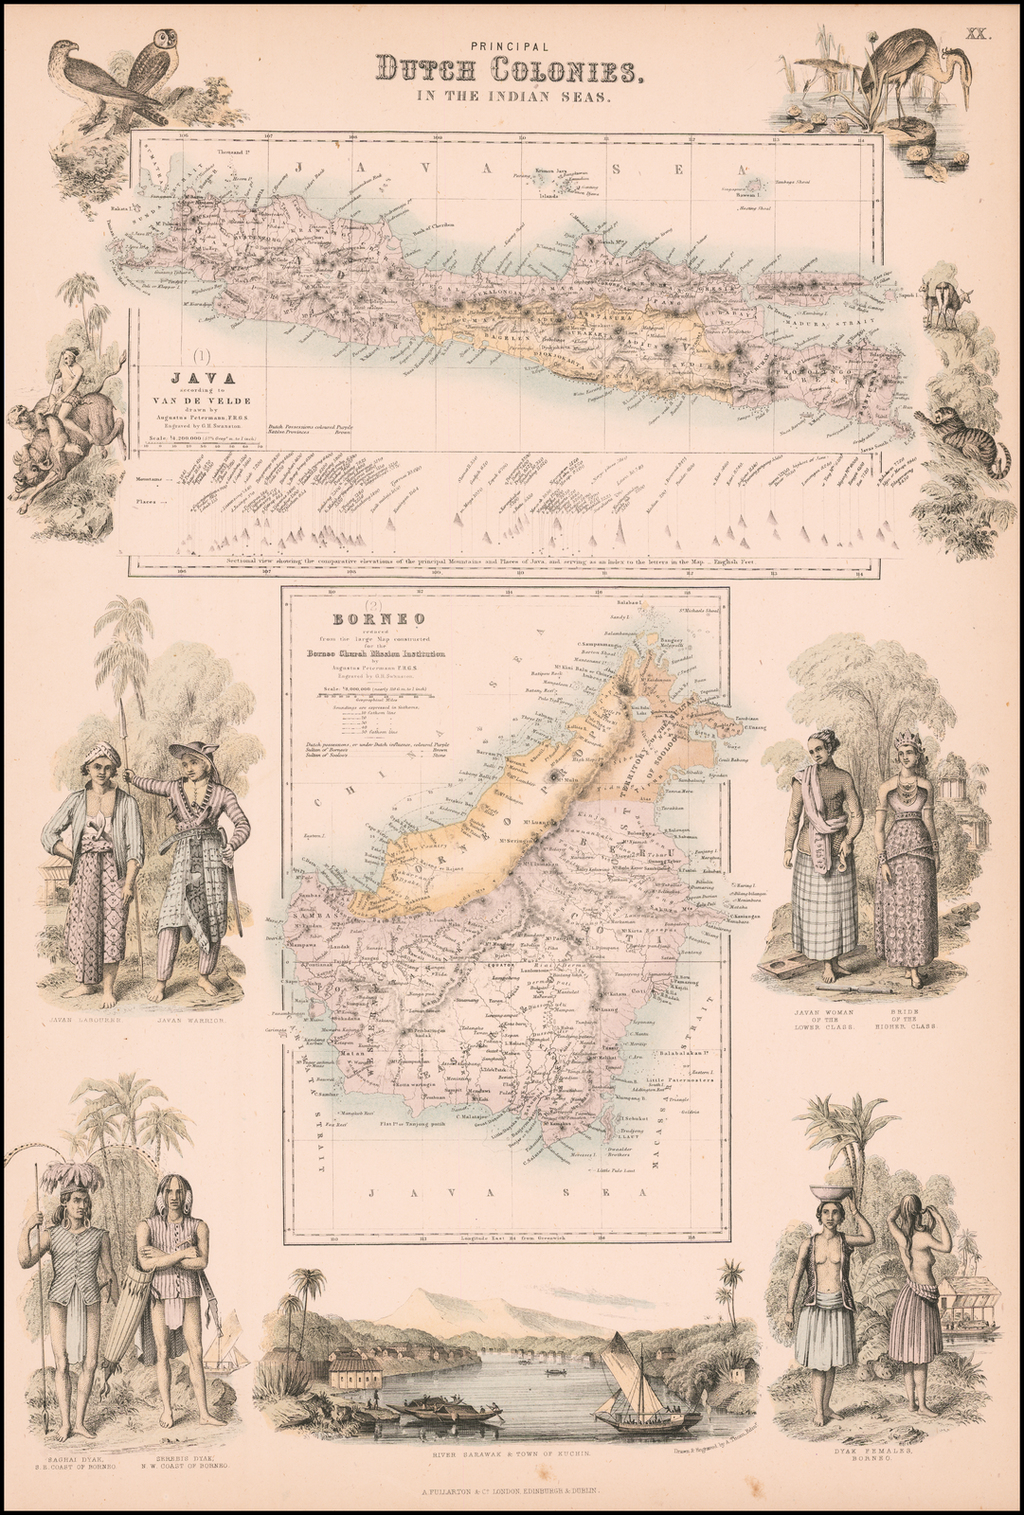 Principal Dutch Colonies in the Indian Seas (Java and Borneo) By Archibald Fullarton & Co.